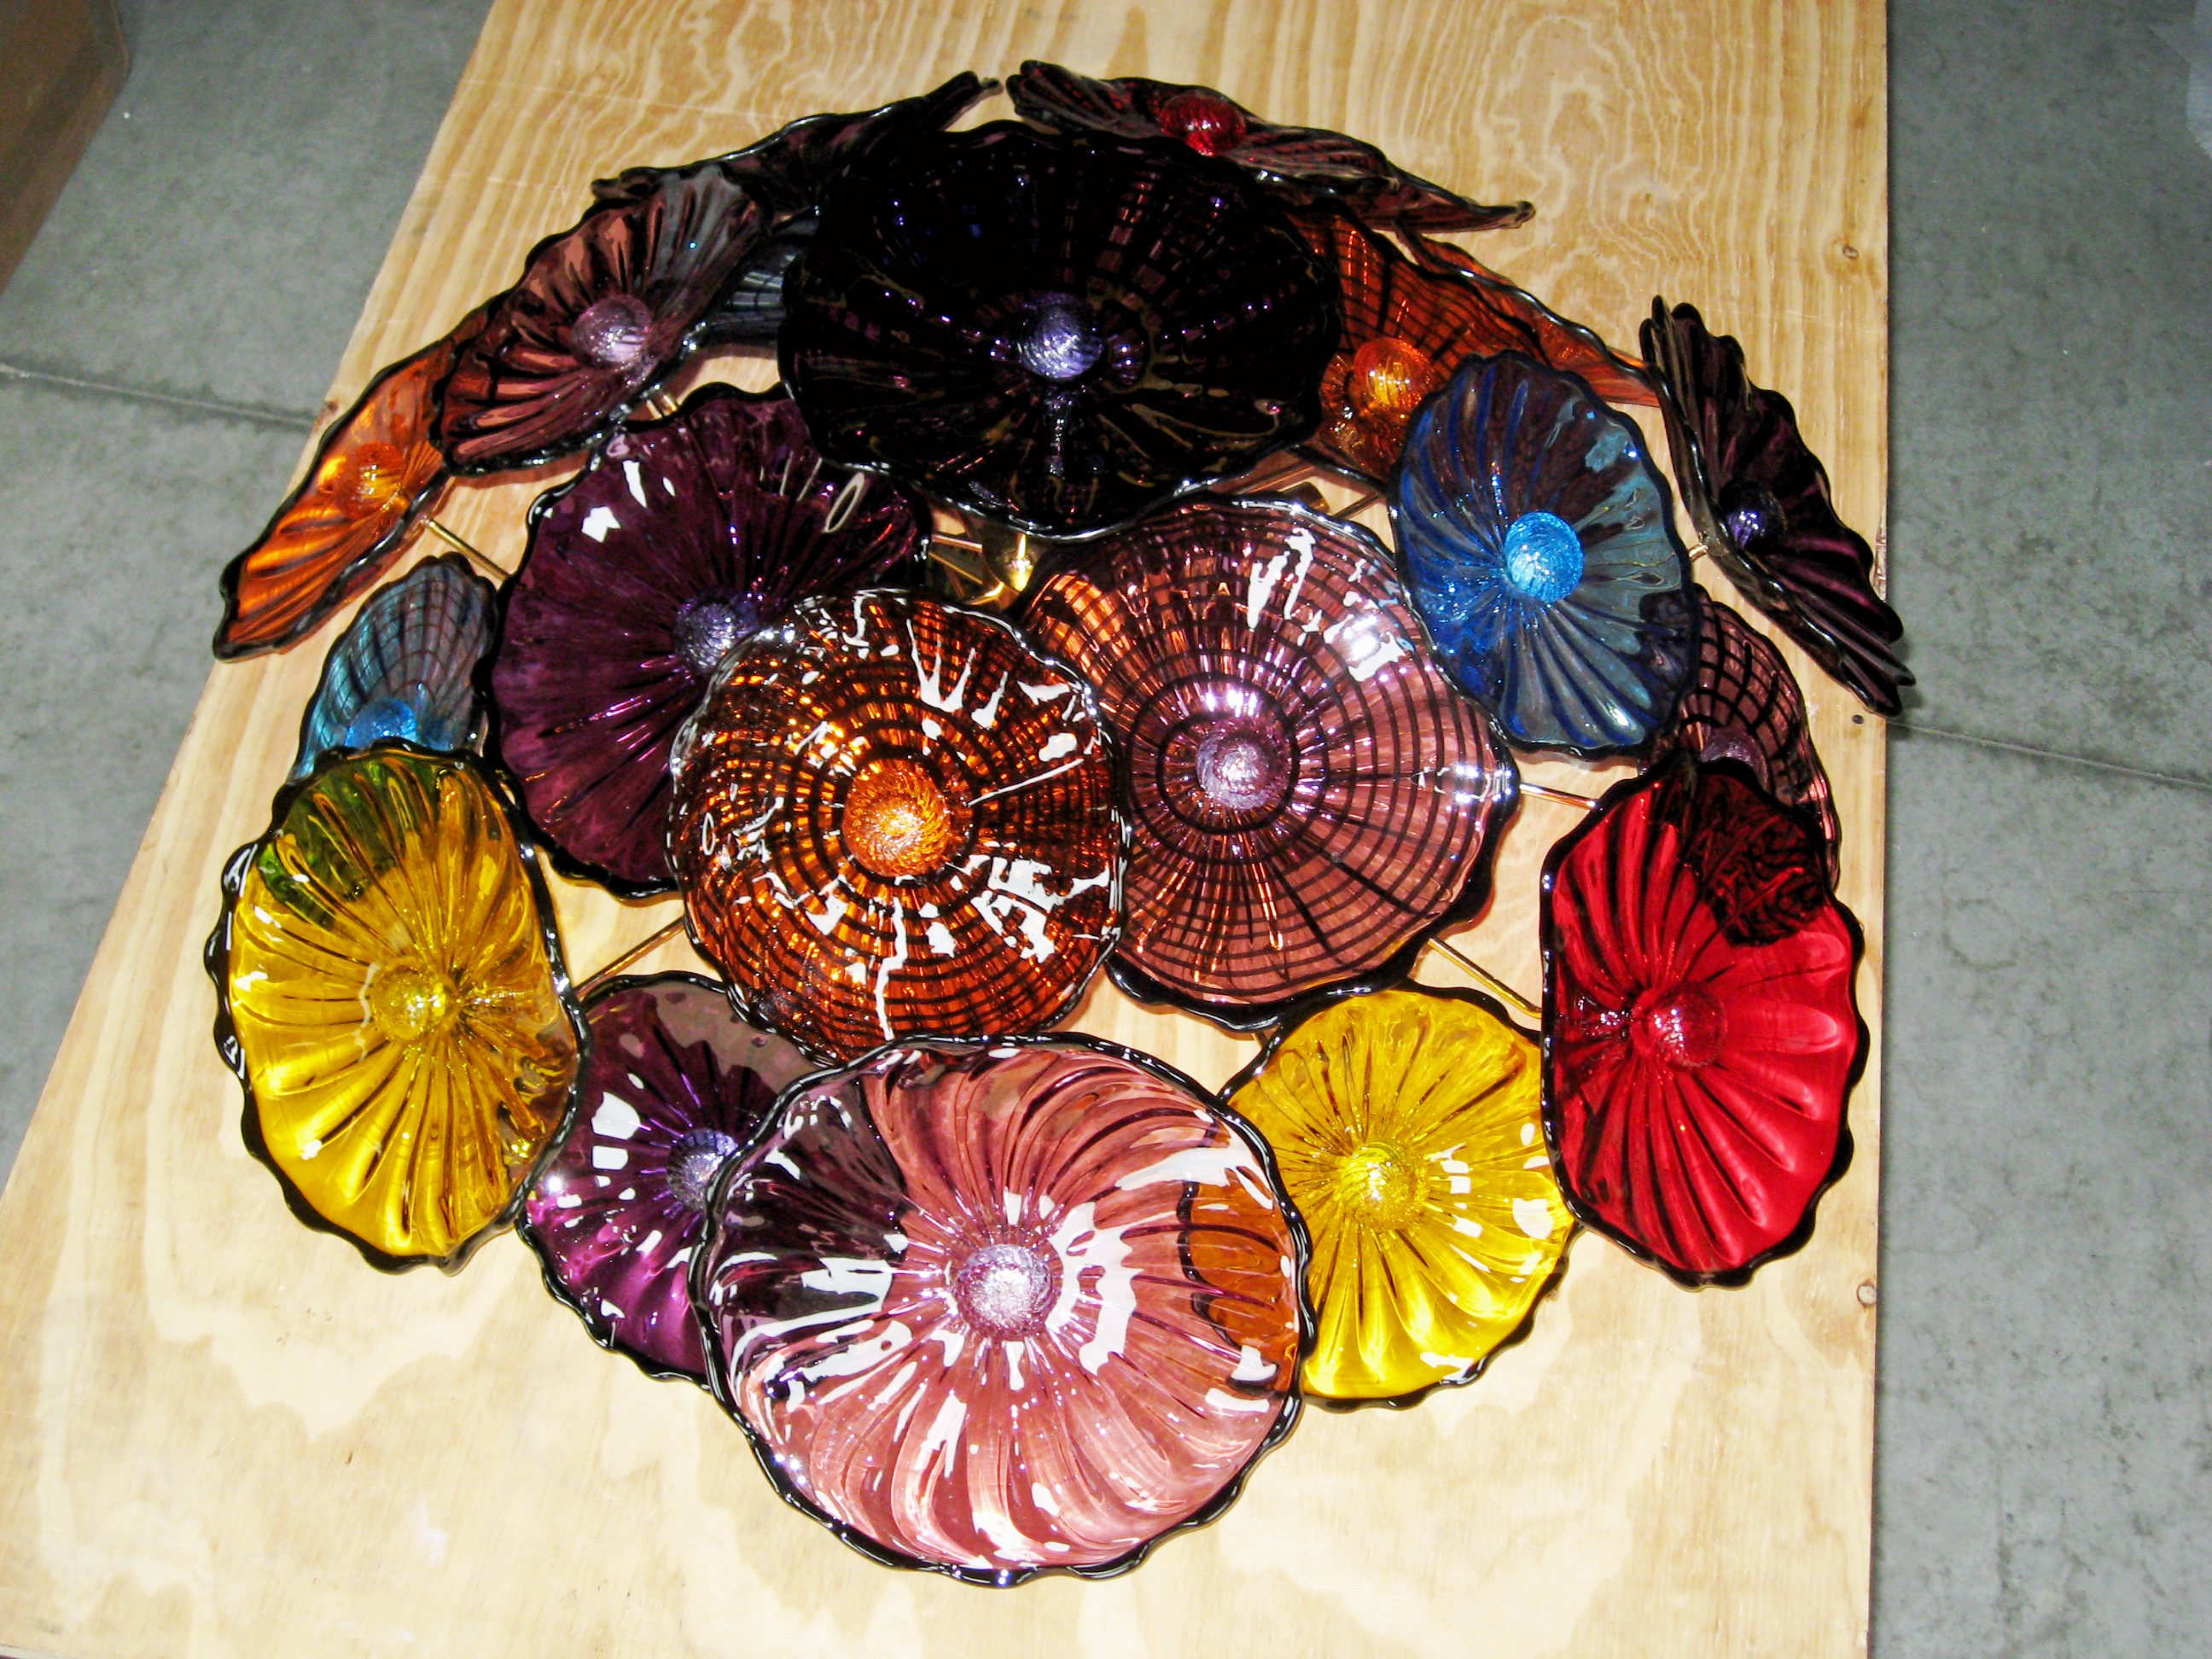 Italian glass from Murano light shapes and colors Glass and